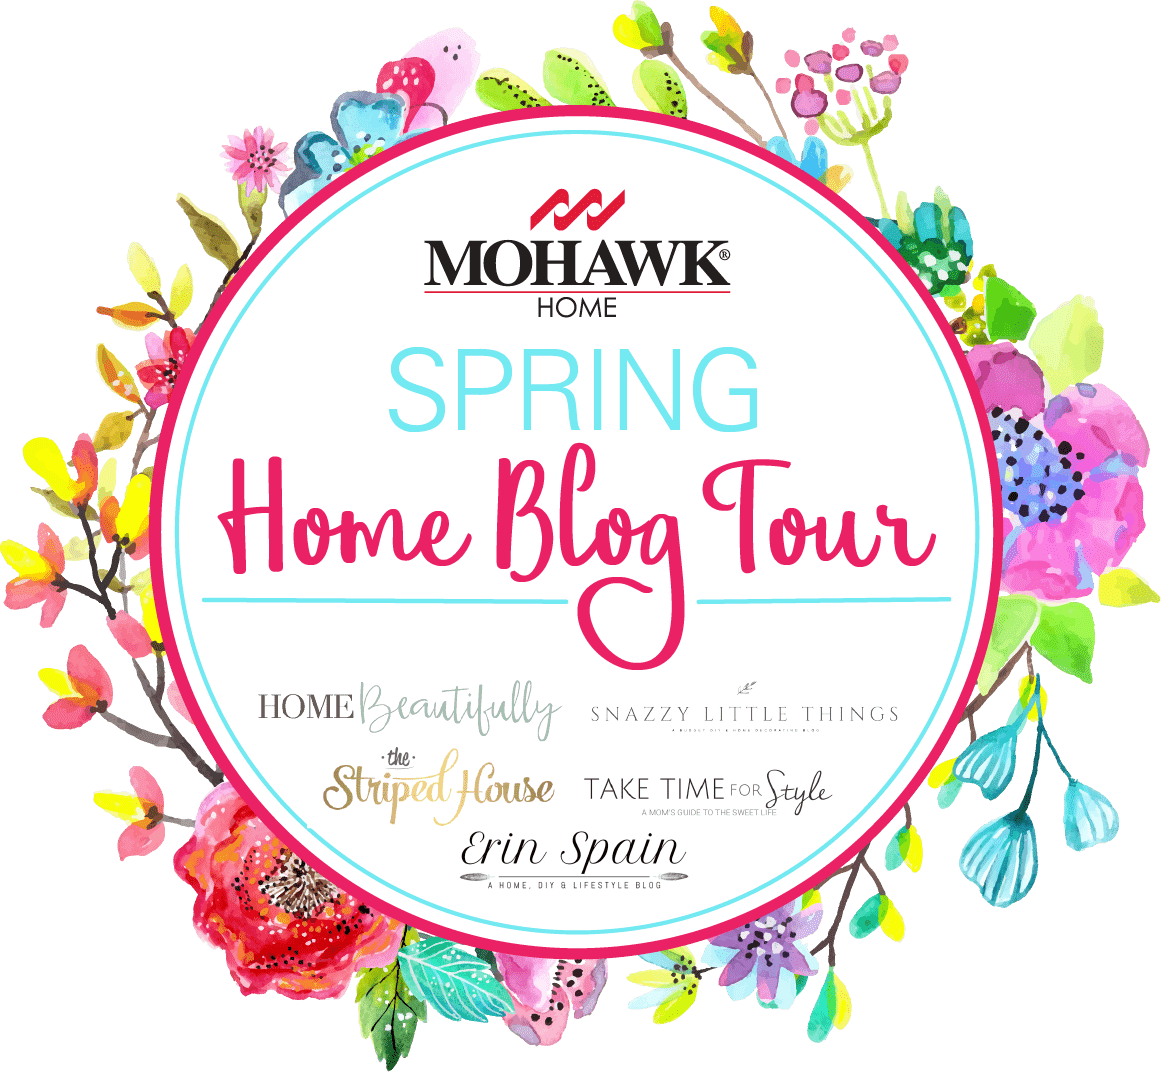 Mohawk Spring Home Tour